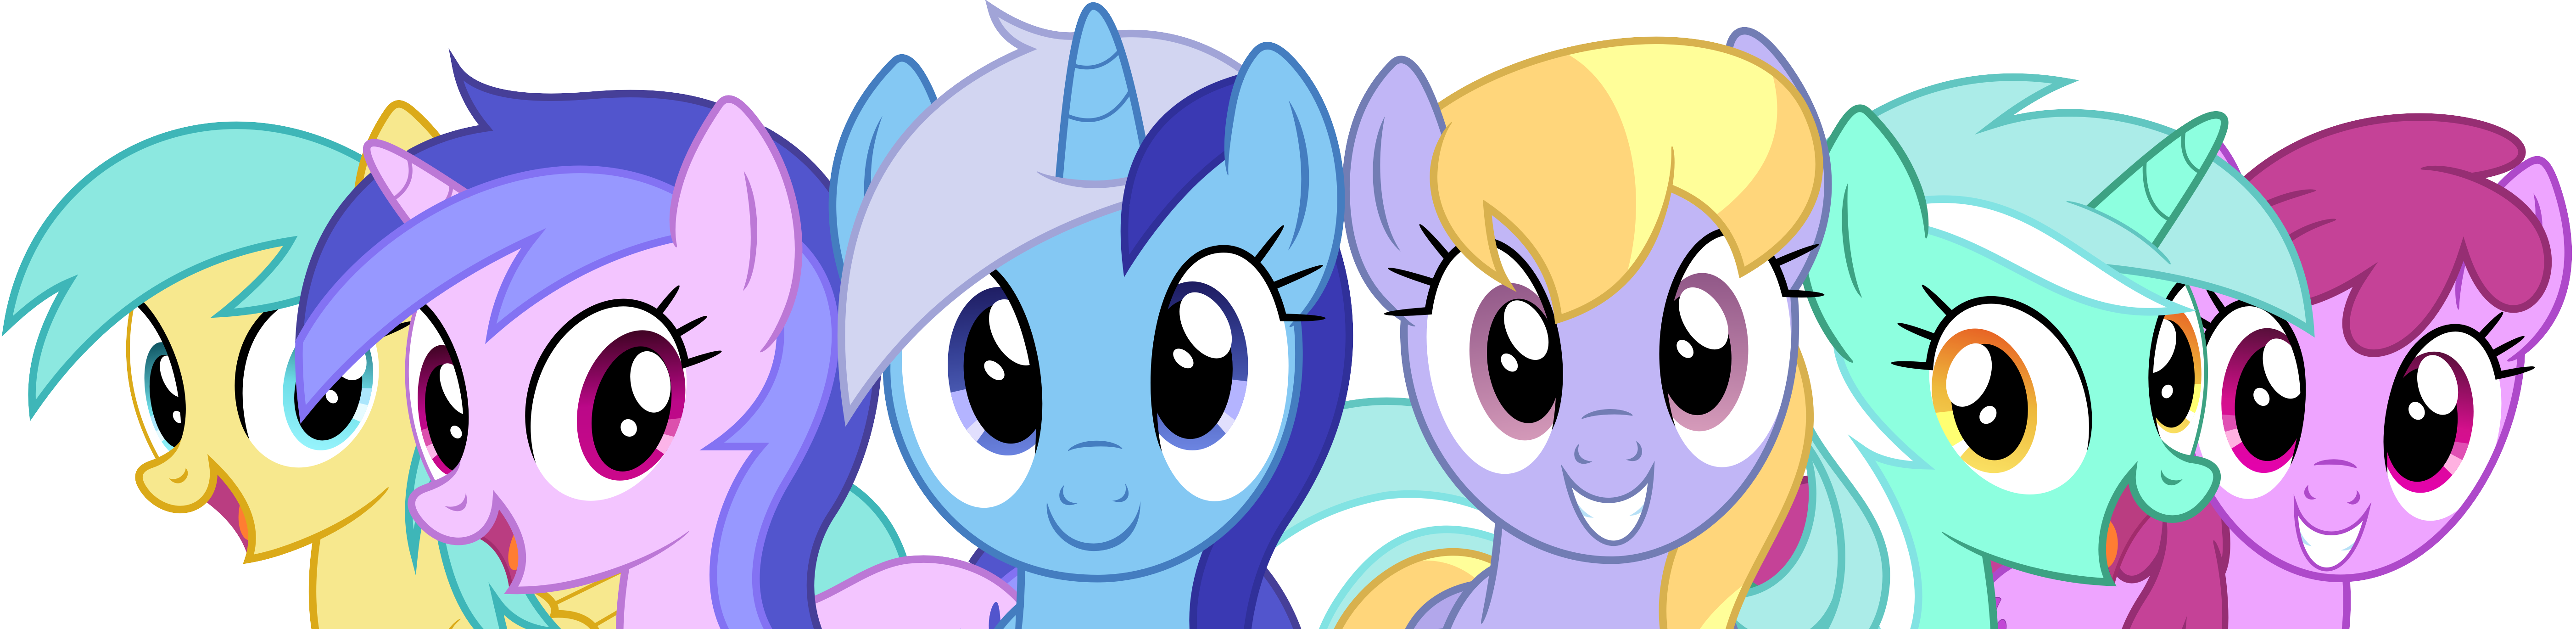 Background Ponies! by bluemeganium on DeviantArt # Sunshower Mlp_175524